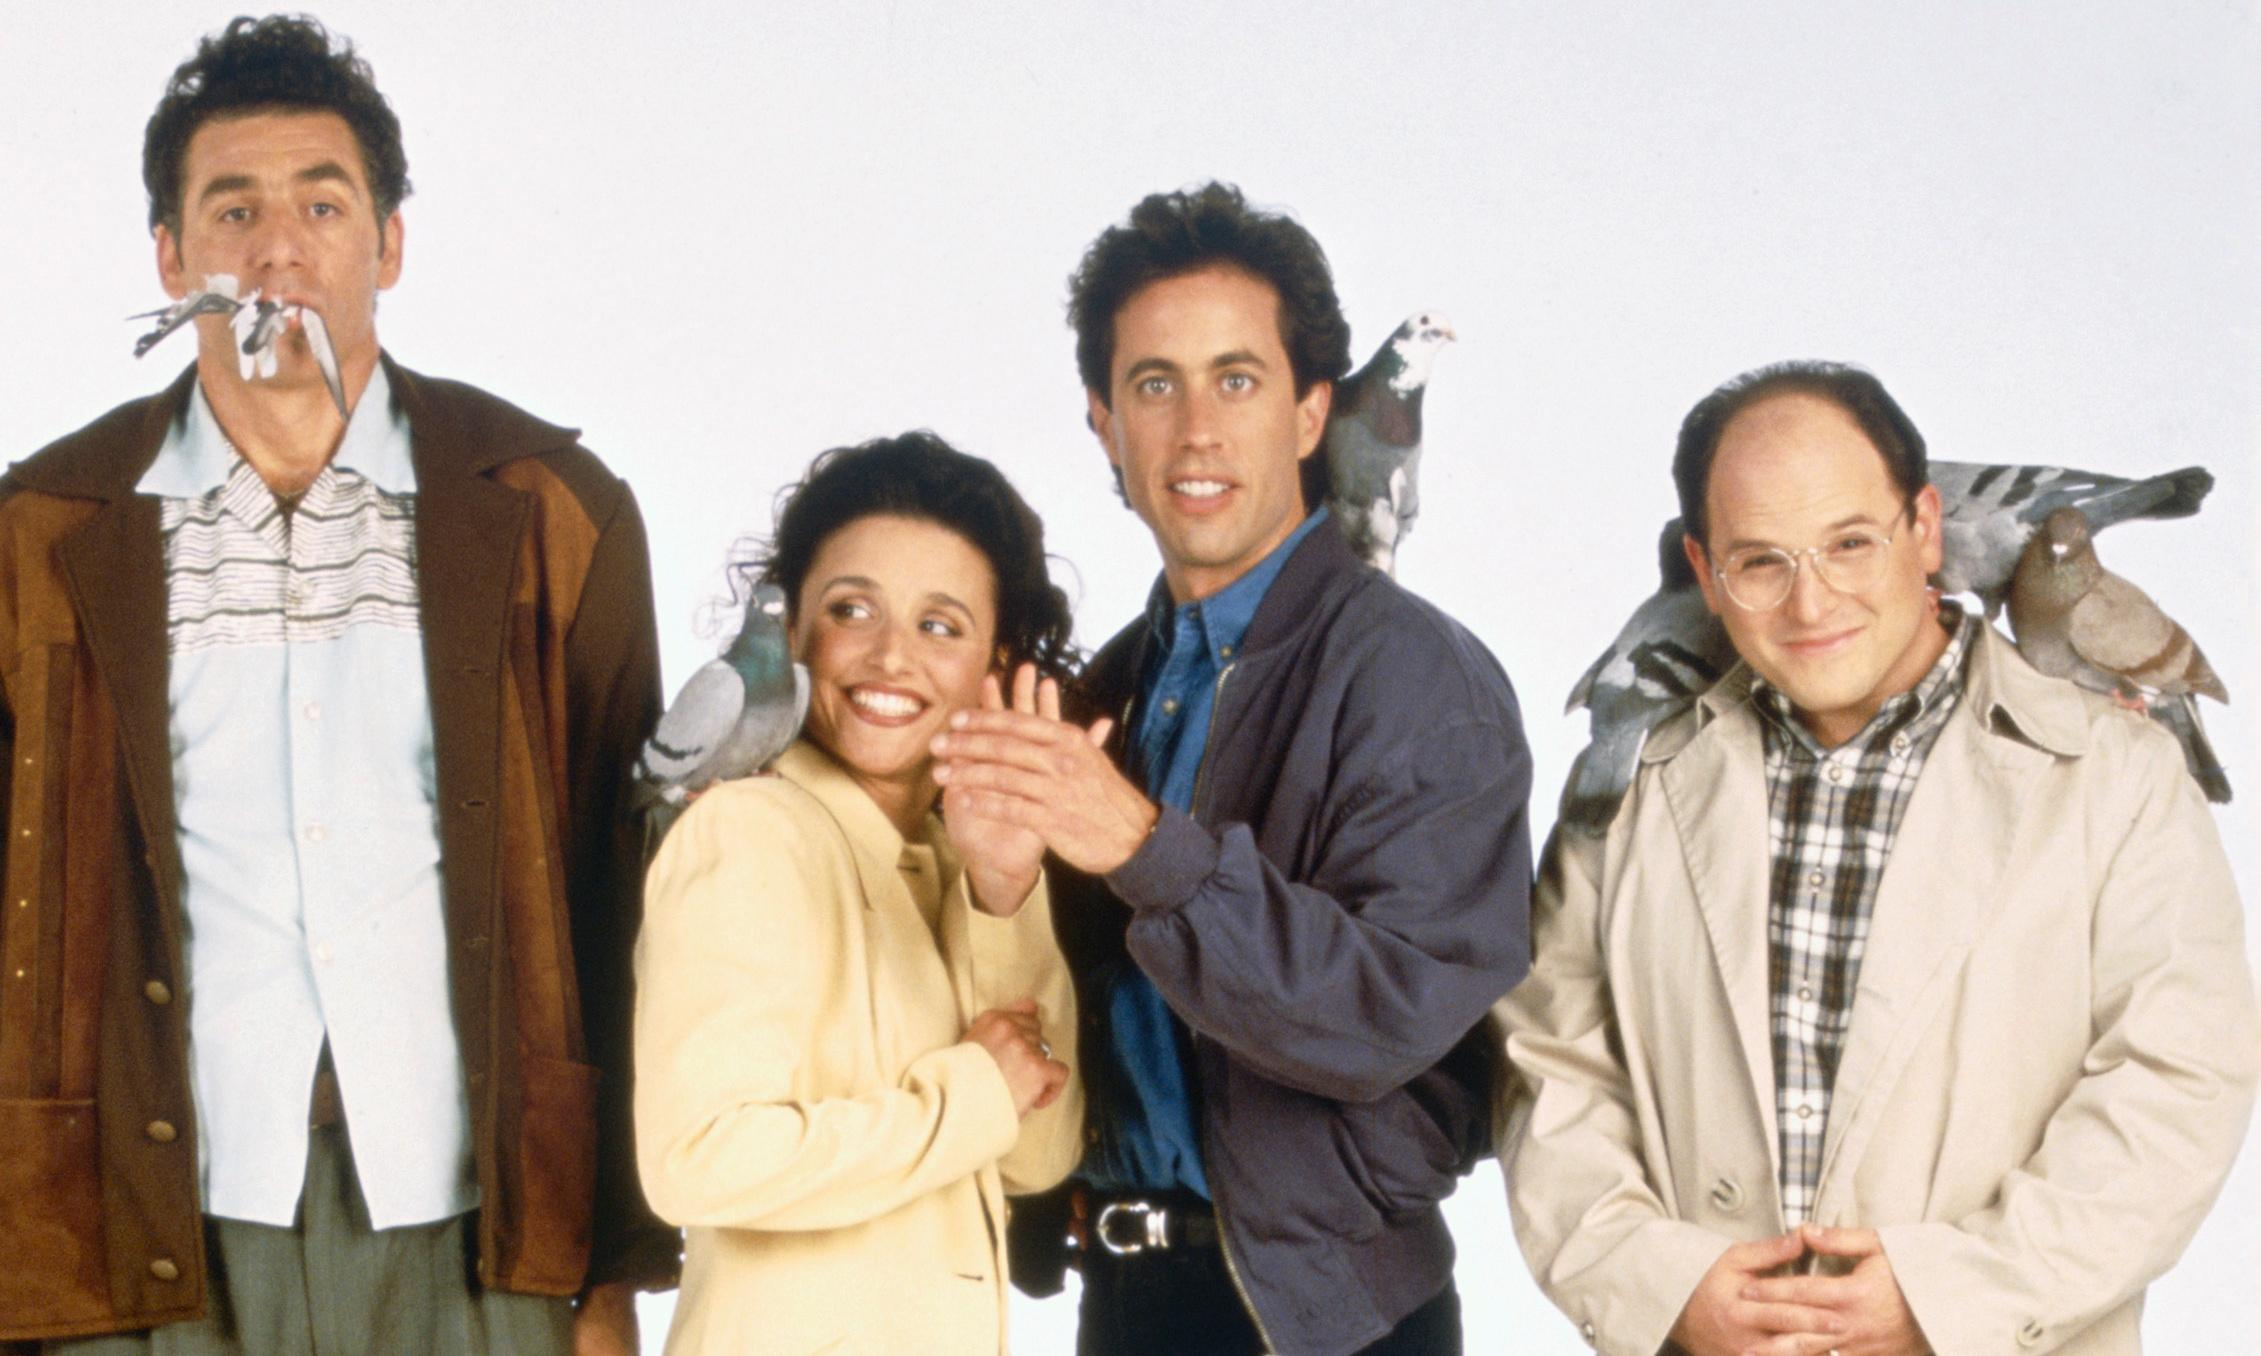 What Seinfeld can teach us about science